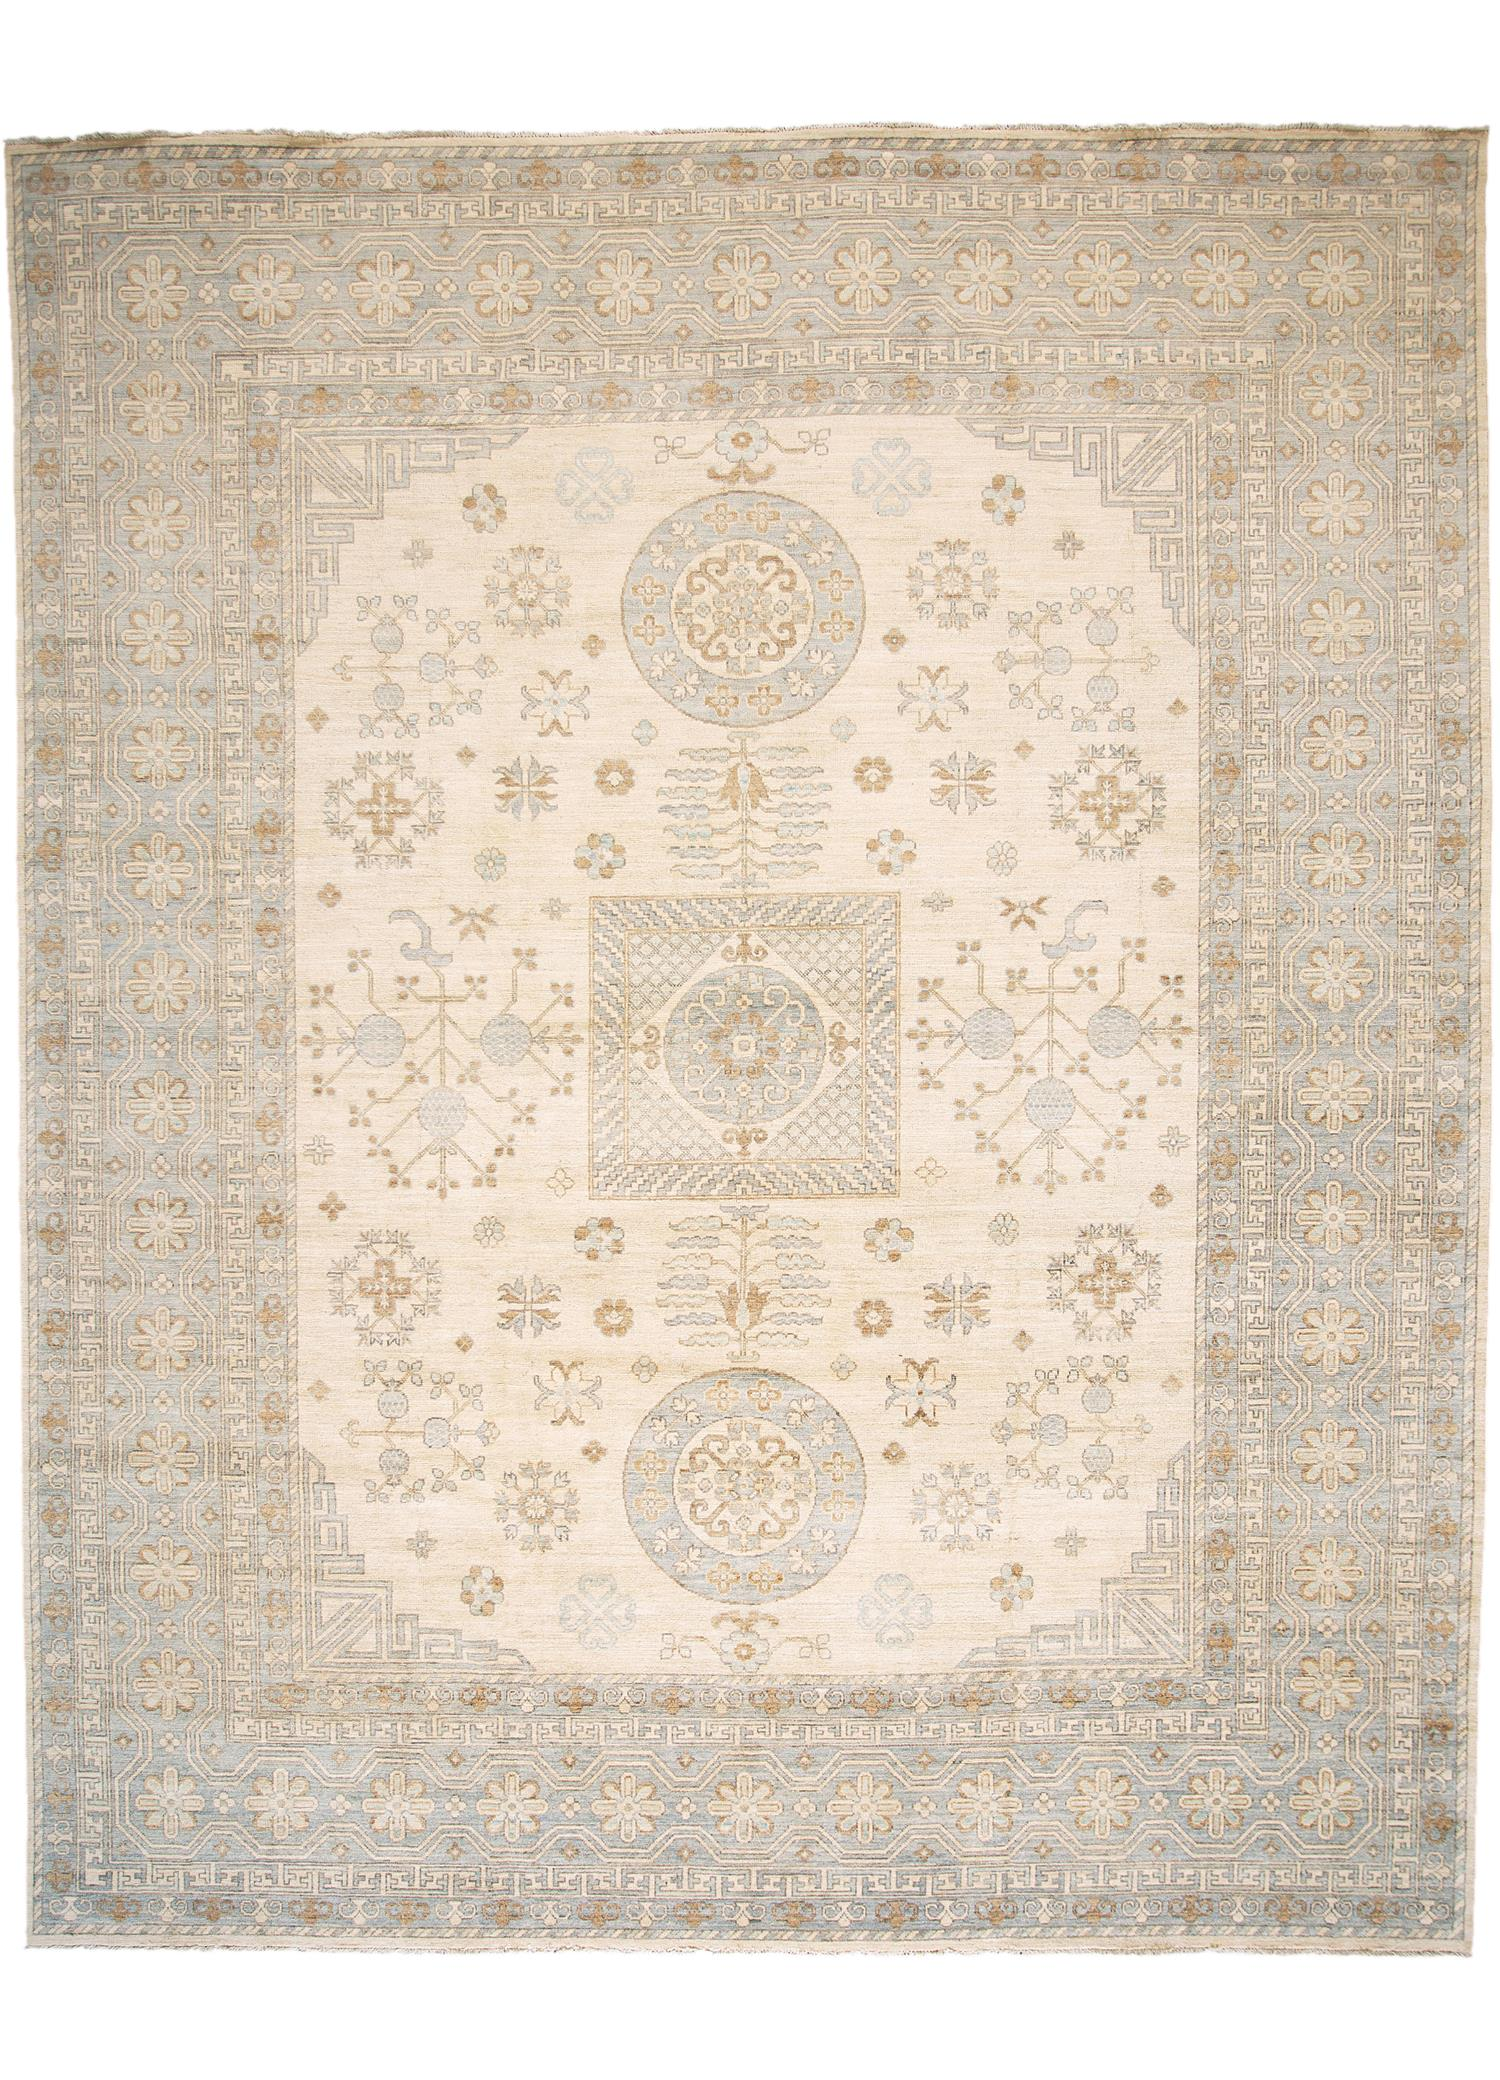 Contemporary Khotan Rug, 12X15